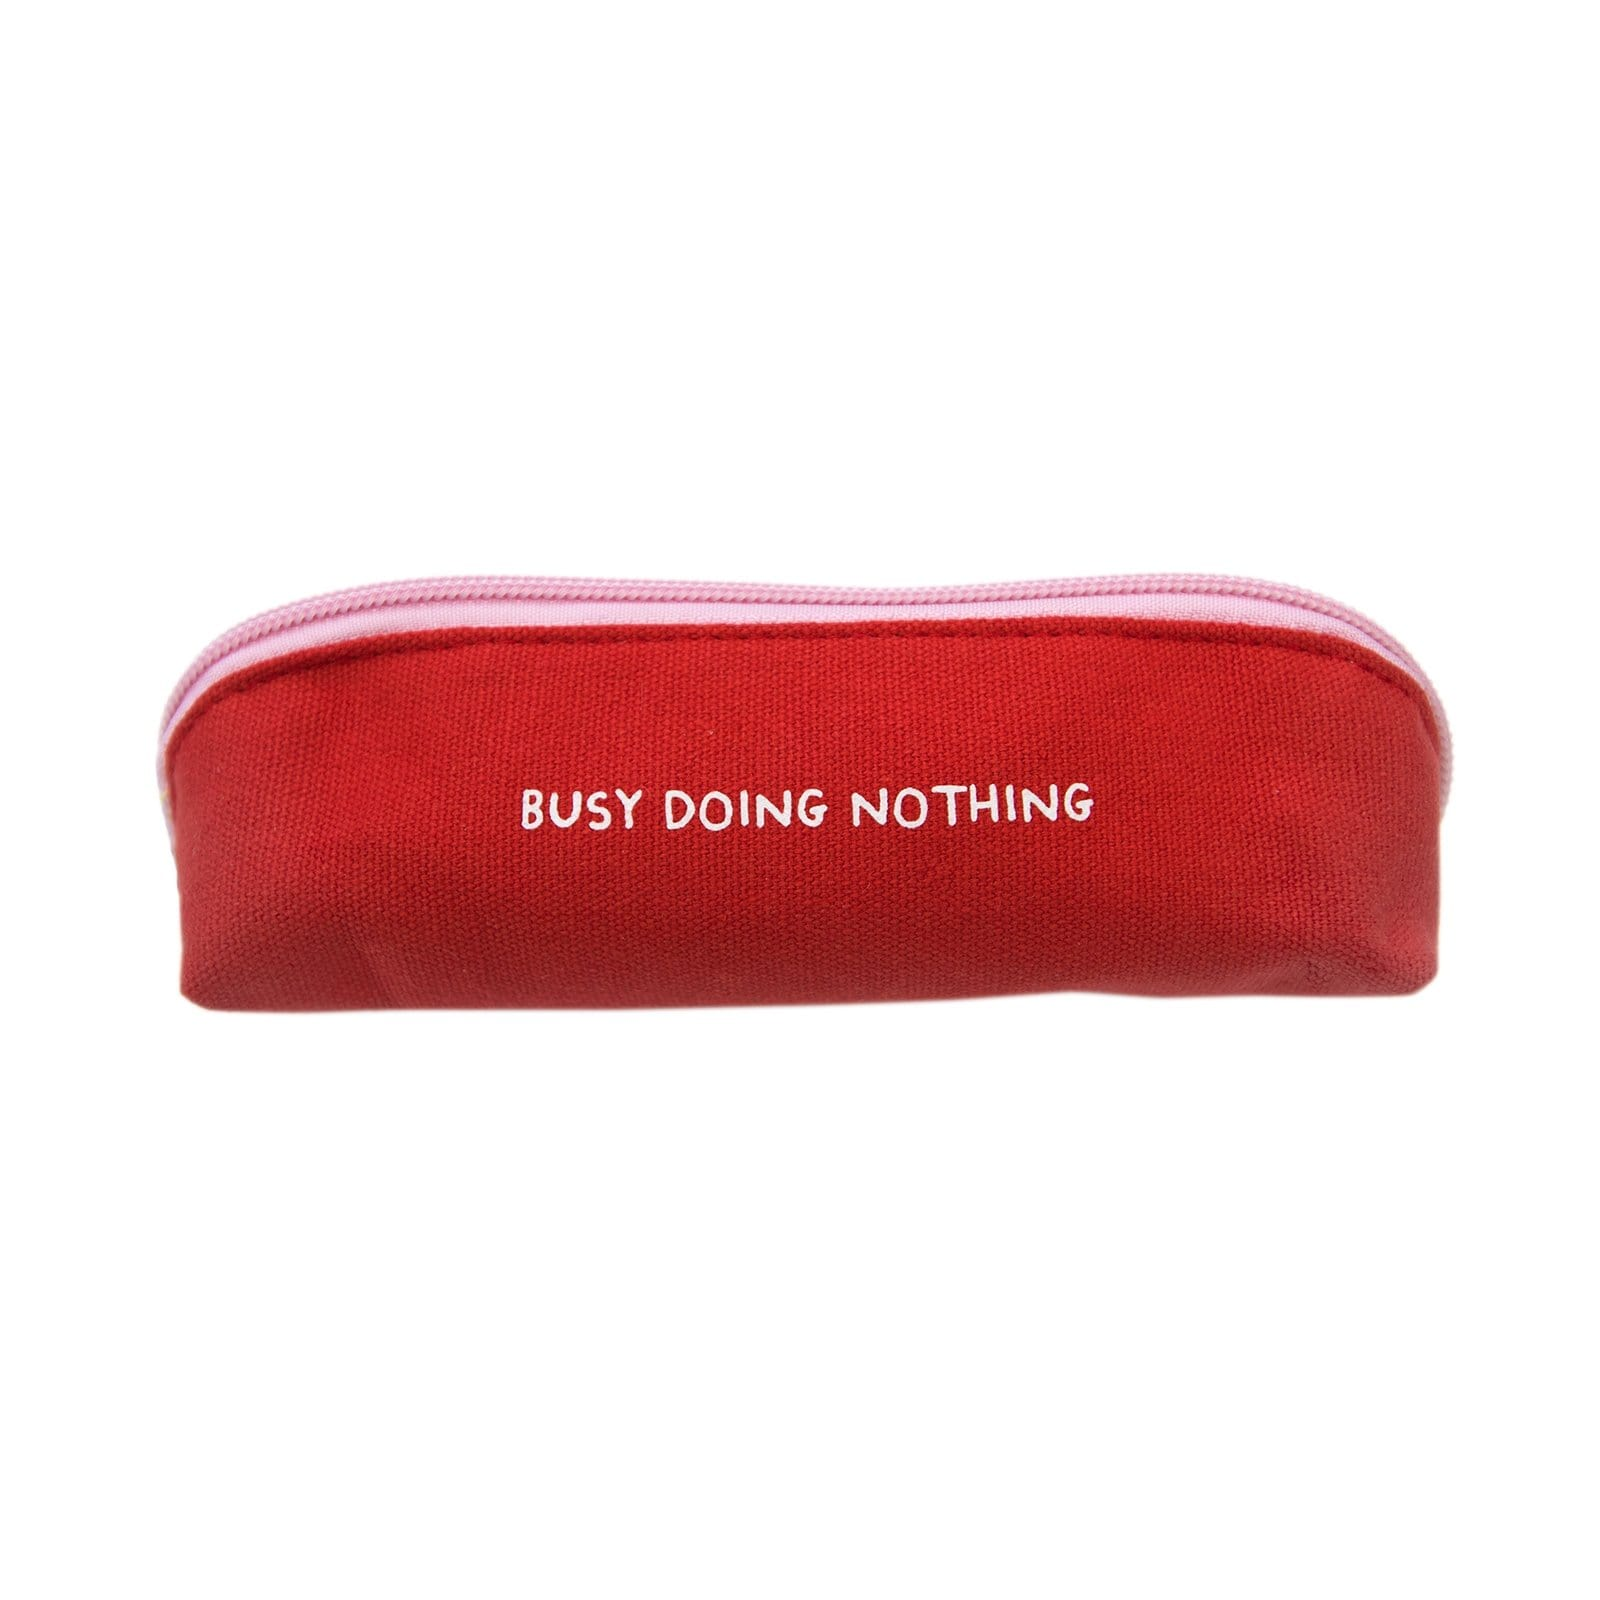 Busy Doing Nothing Red Skinny Pencil Case